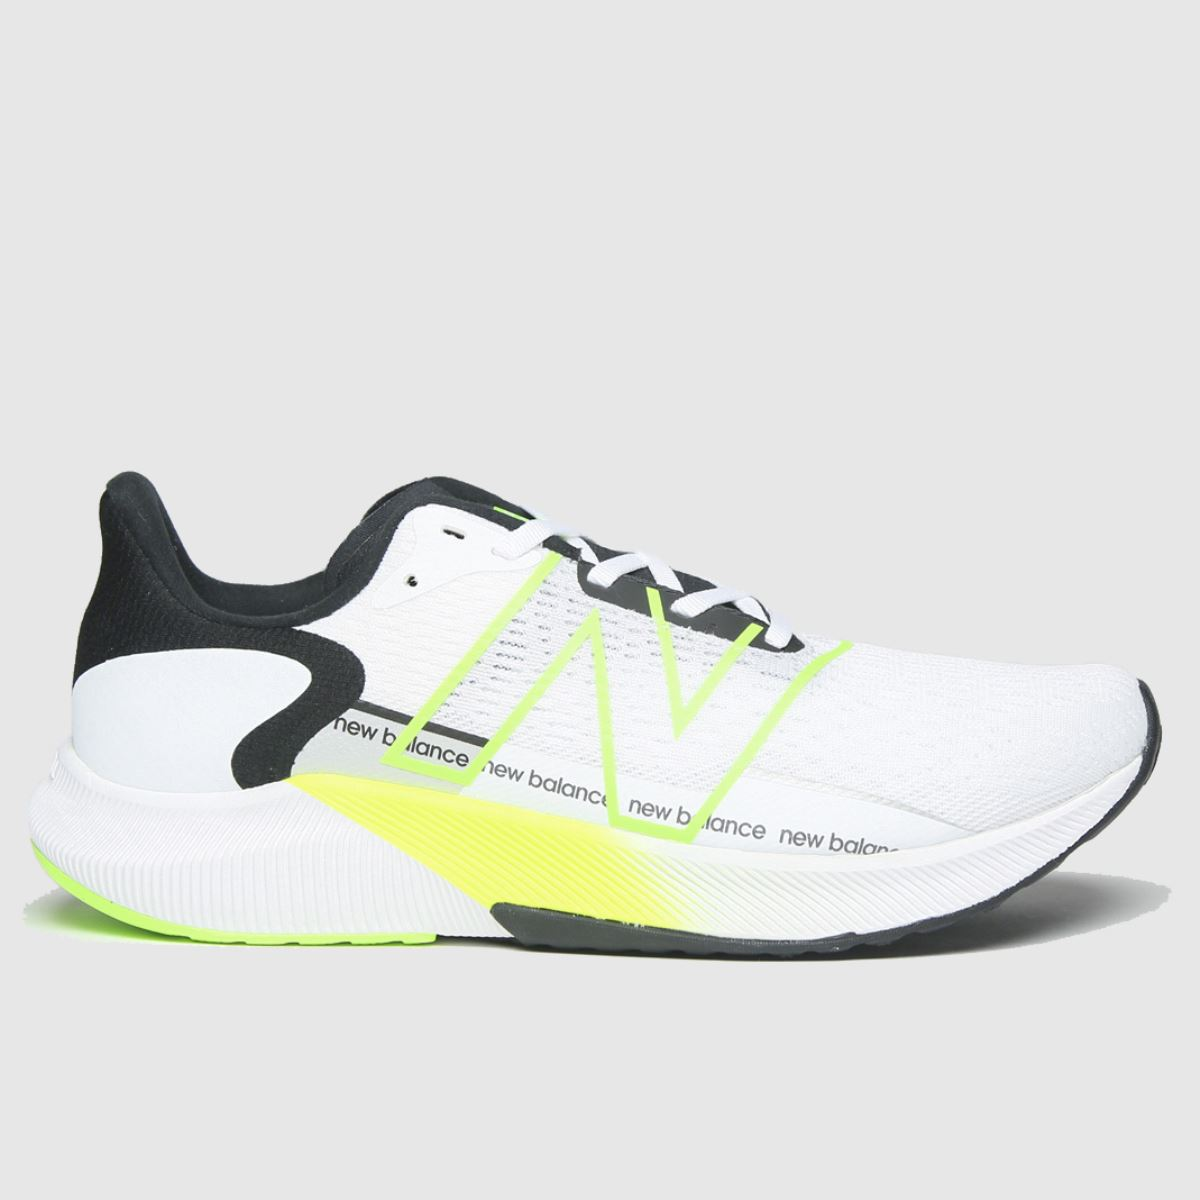 New Balance White & Green Fuelcell Propel V2 Trainers